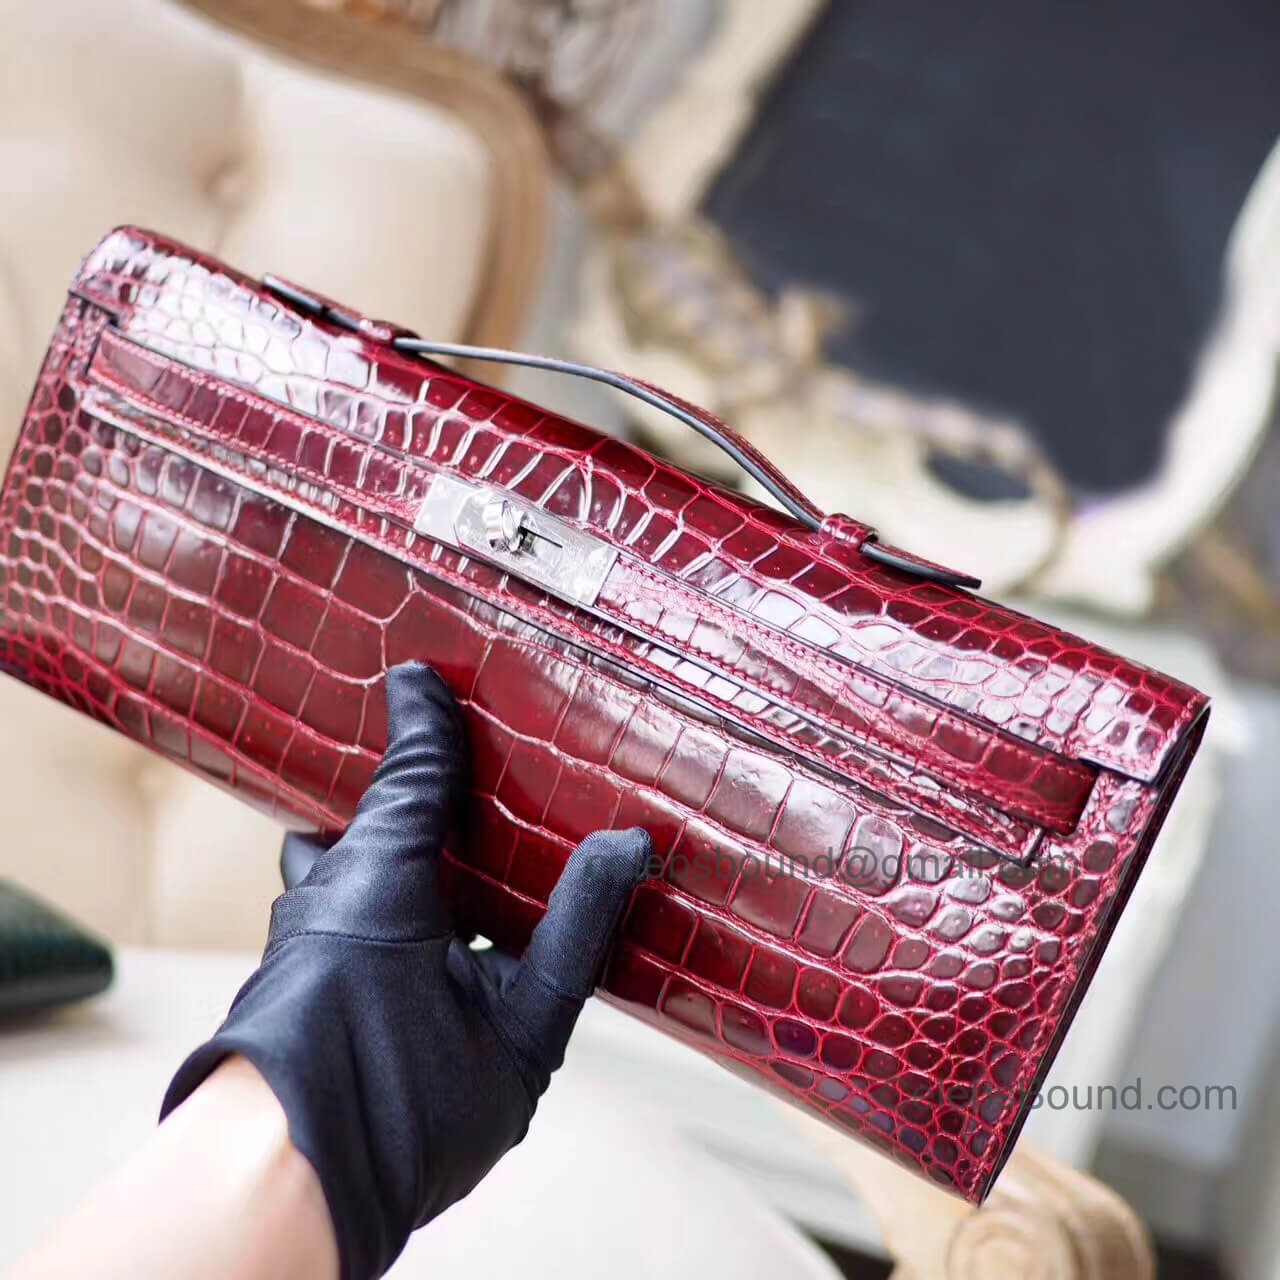 Replica Hermes Kelly Cut 31 Clutch in ck57 Bordeaux Shiny Porosus Croc PHW